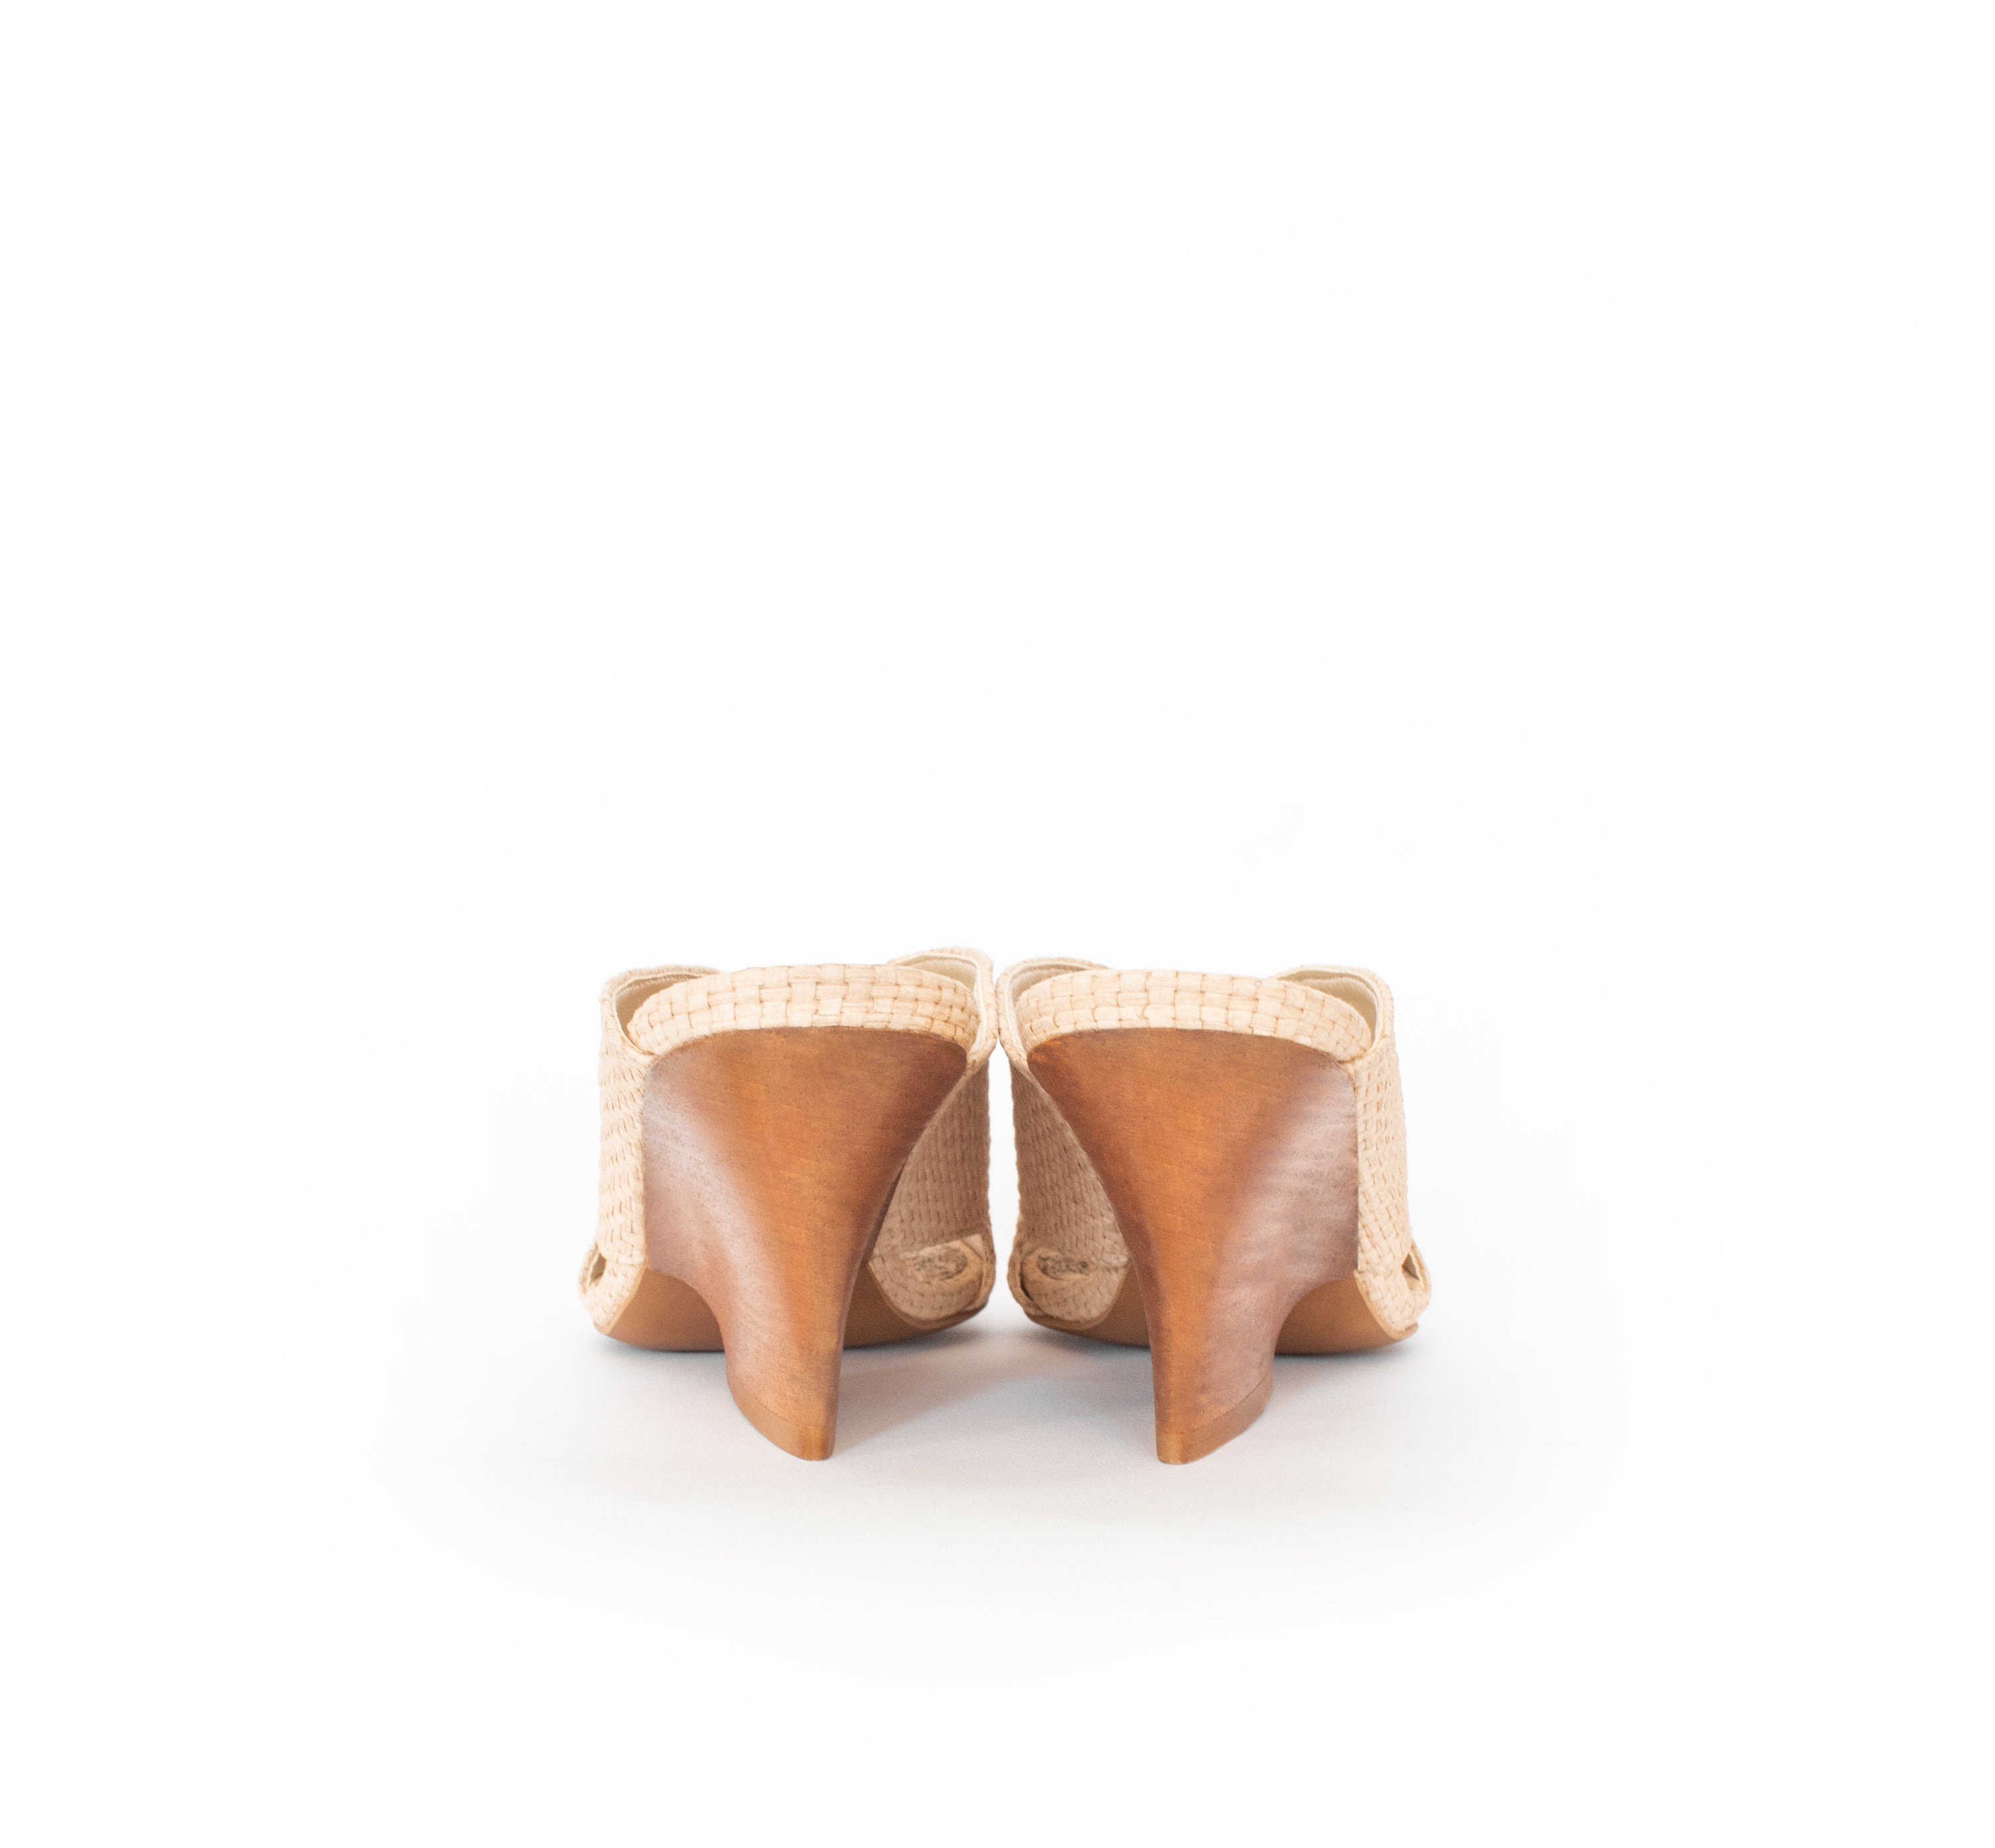 High Heel Mules in natural raffia and breathable lining, dark wood heel. Luxury vegan heels. Sydney Brown Spring Summer 2019. Sustainable, eco-friendly fashion